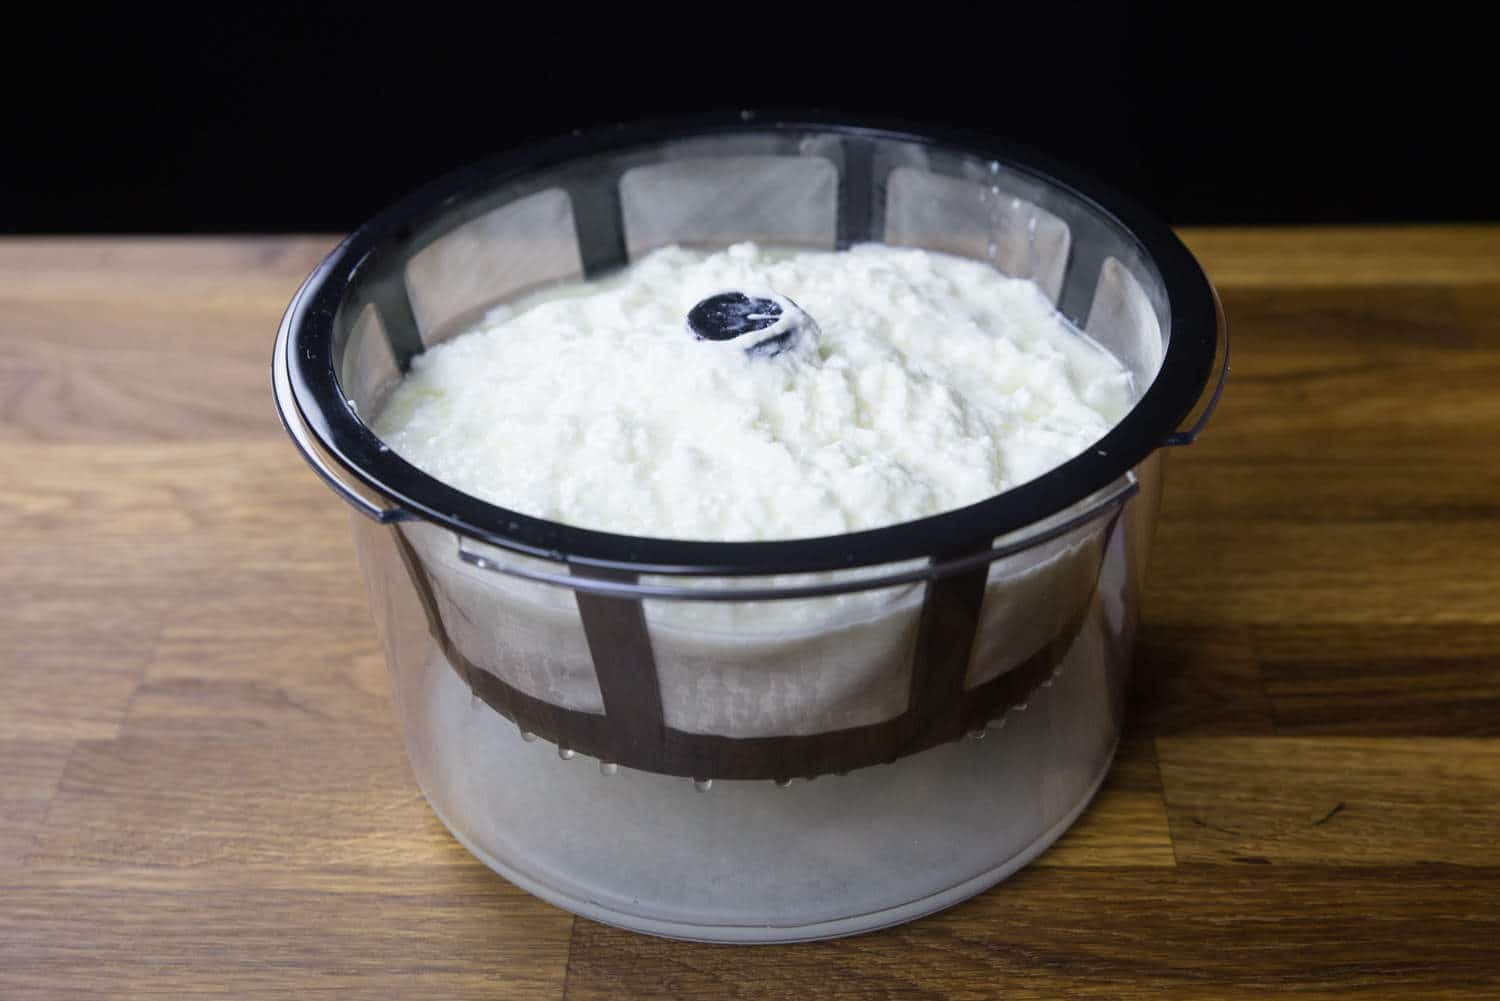 Foolproof Instant Pot Greek Yogurt Recipe #12 (Pressure Cooker Greek Yogurt): straining the yogurt with Greek Yogurt Maker to separate the whey from the yogurt